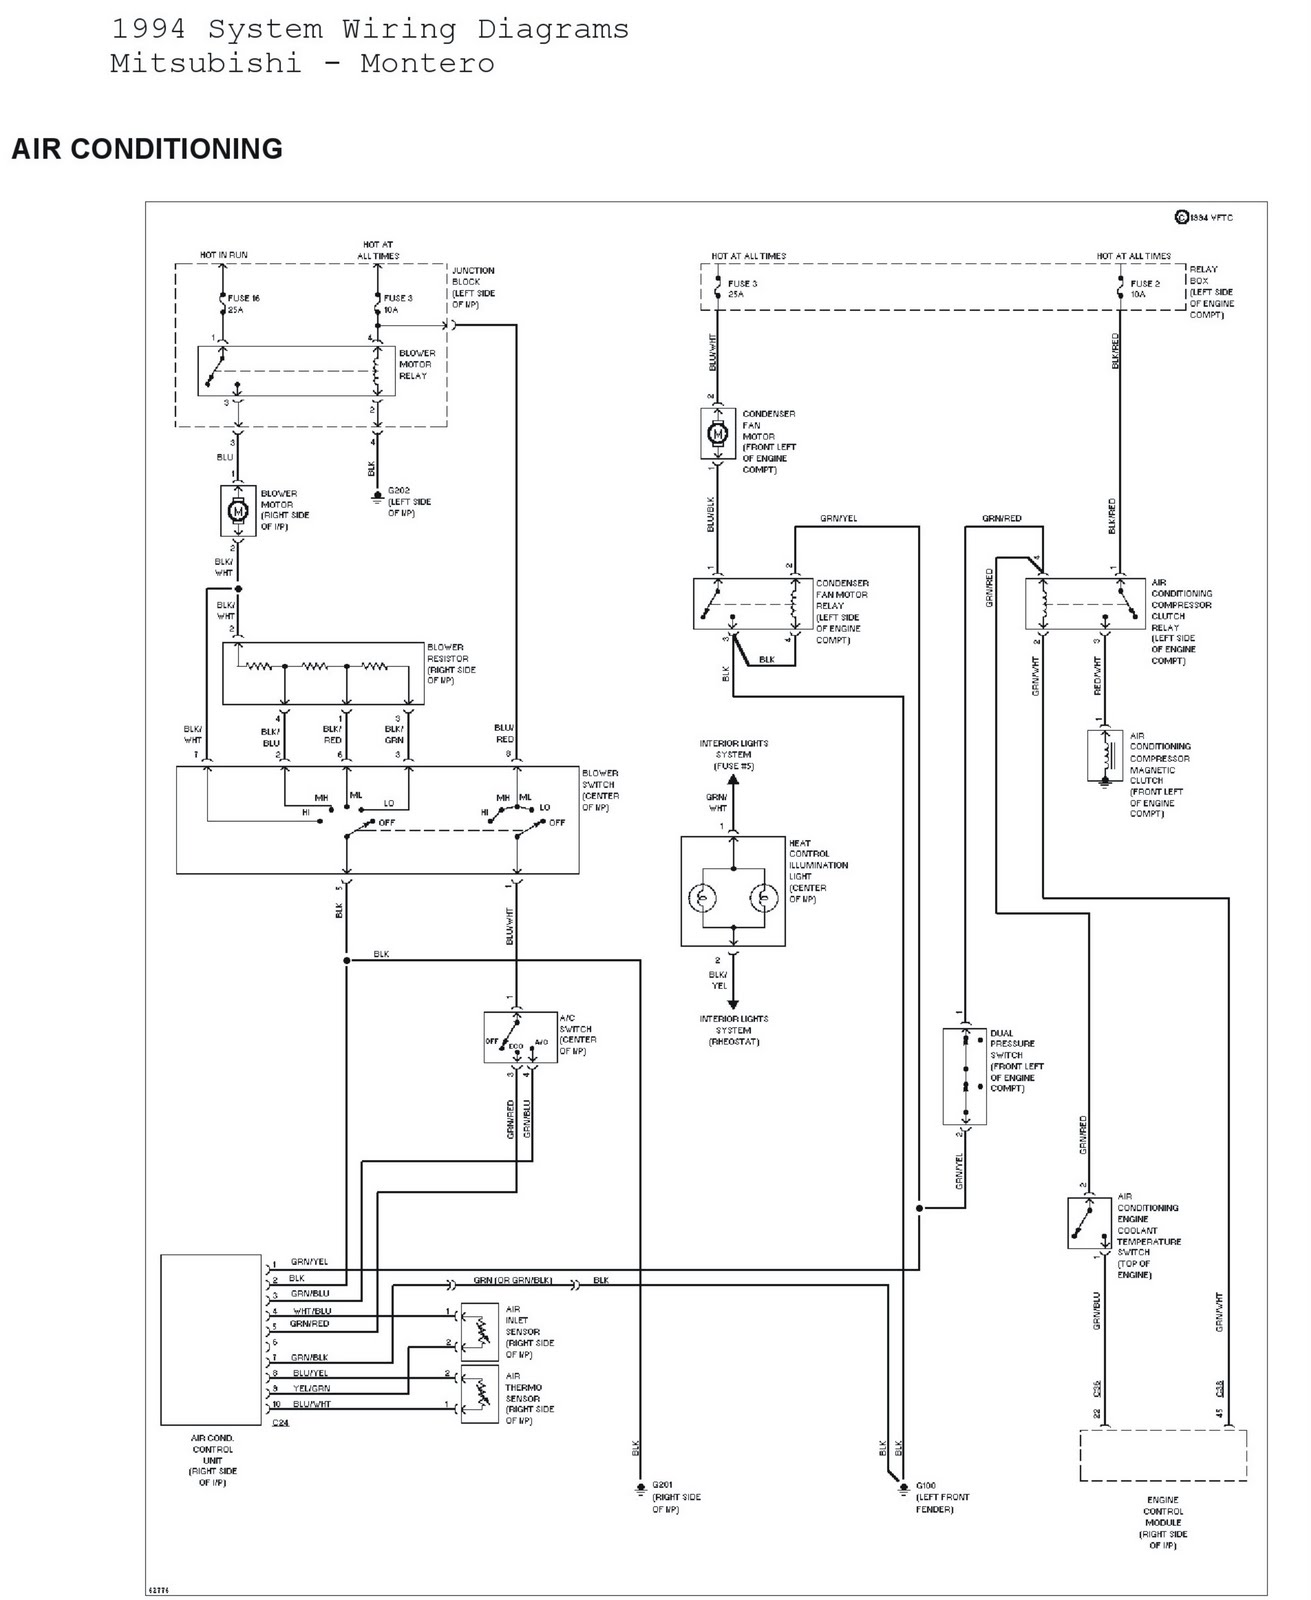 95 Mitsubishi Galant Wiring Diagram Land Rover Discovery Jeep Patriot Diagrams 1994 Electrical On